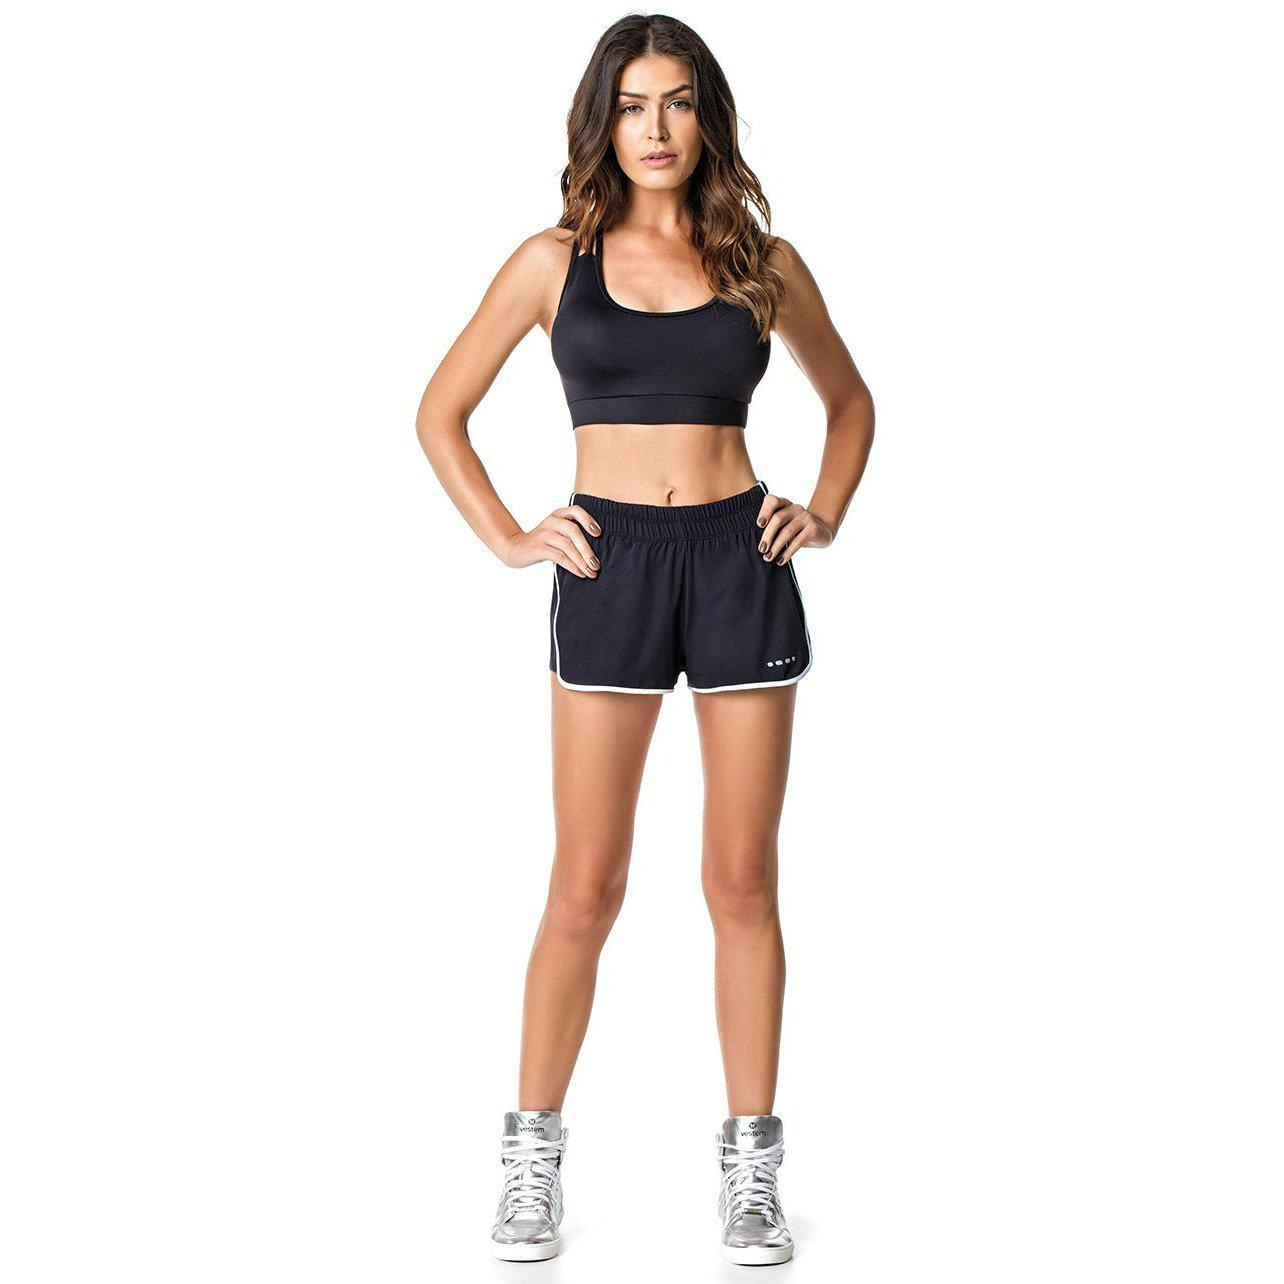 SHORTS 116 DELAVIGNE BLACK-AcDrift